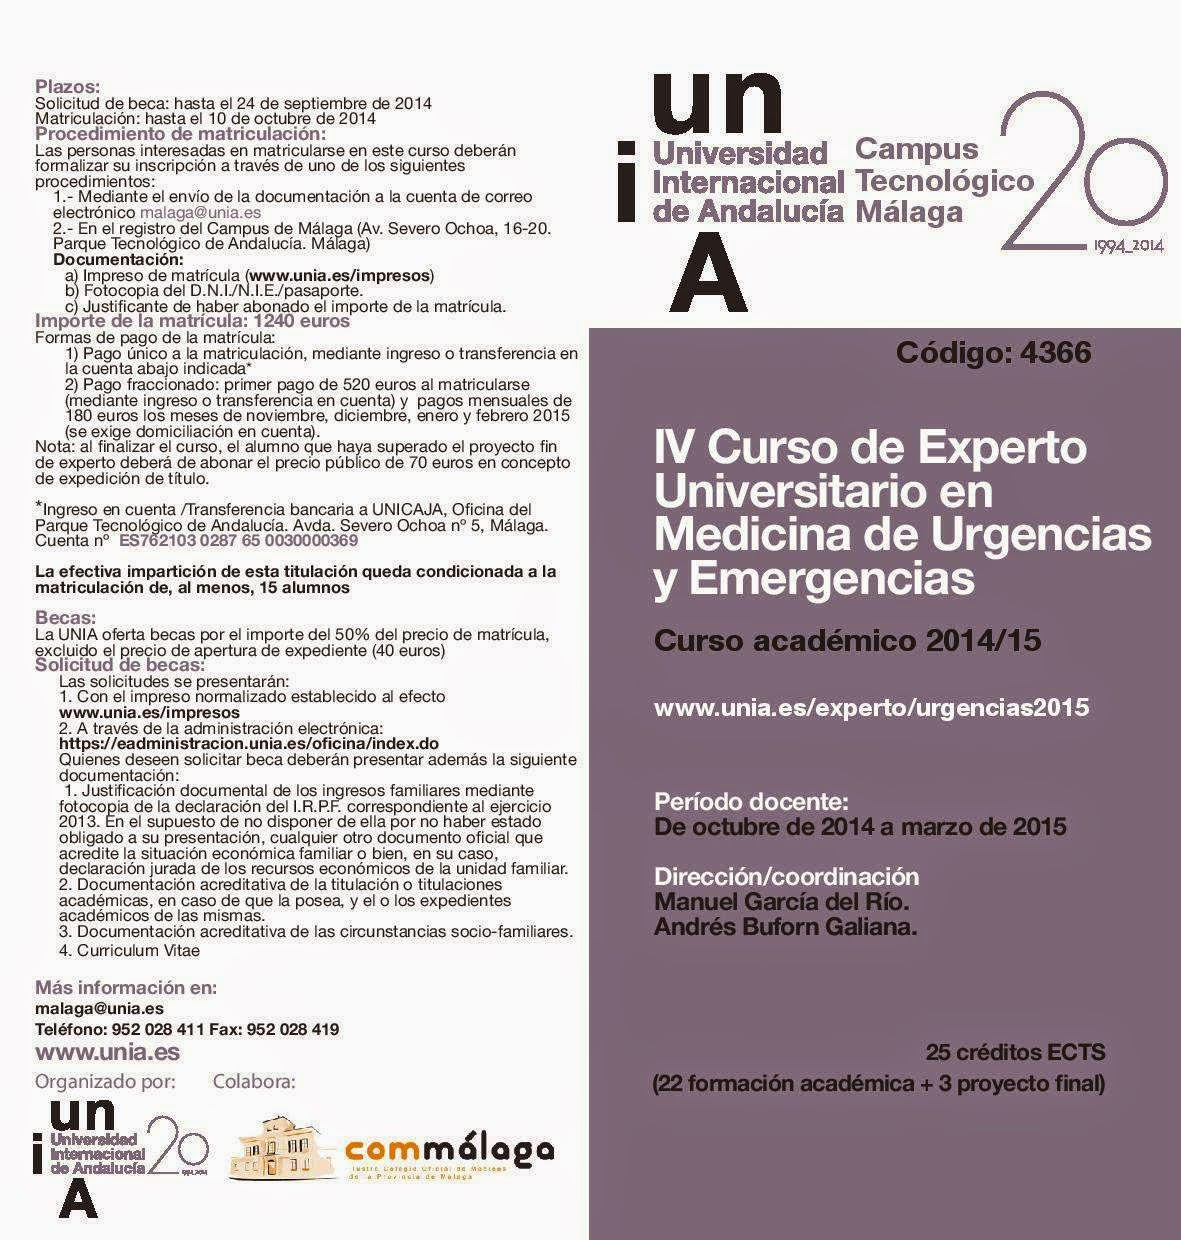 http://www.unia.es/images/stories/sede_malaga/CURSO%20ACADEMICO%202014-15/FOLLETOS/4366_urgencias_y_emergencias.pdf